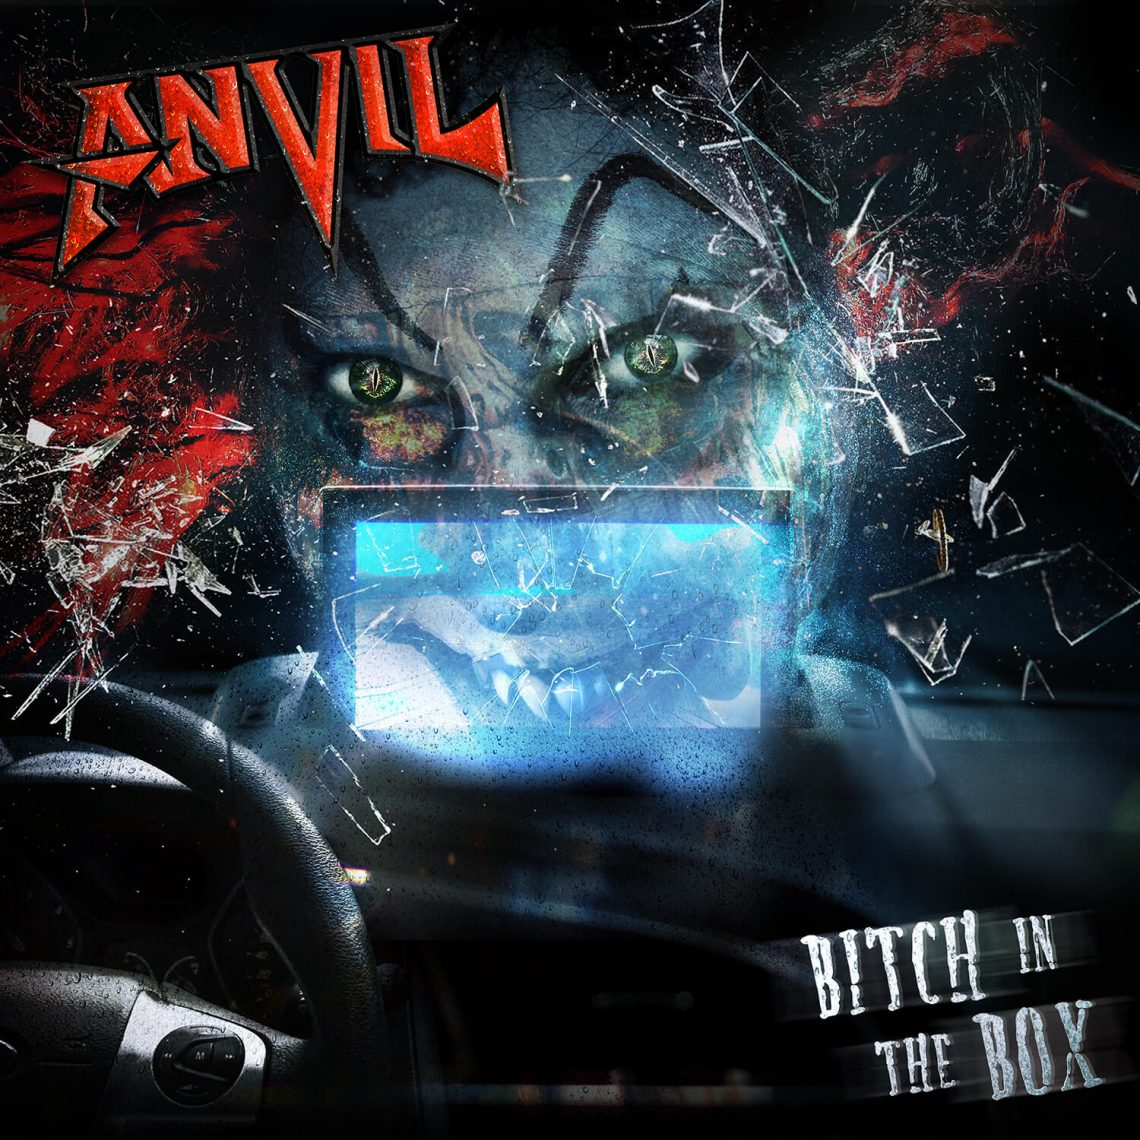 ANVIL release new single and video today!